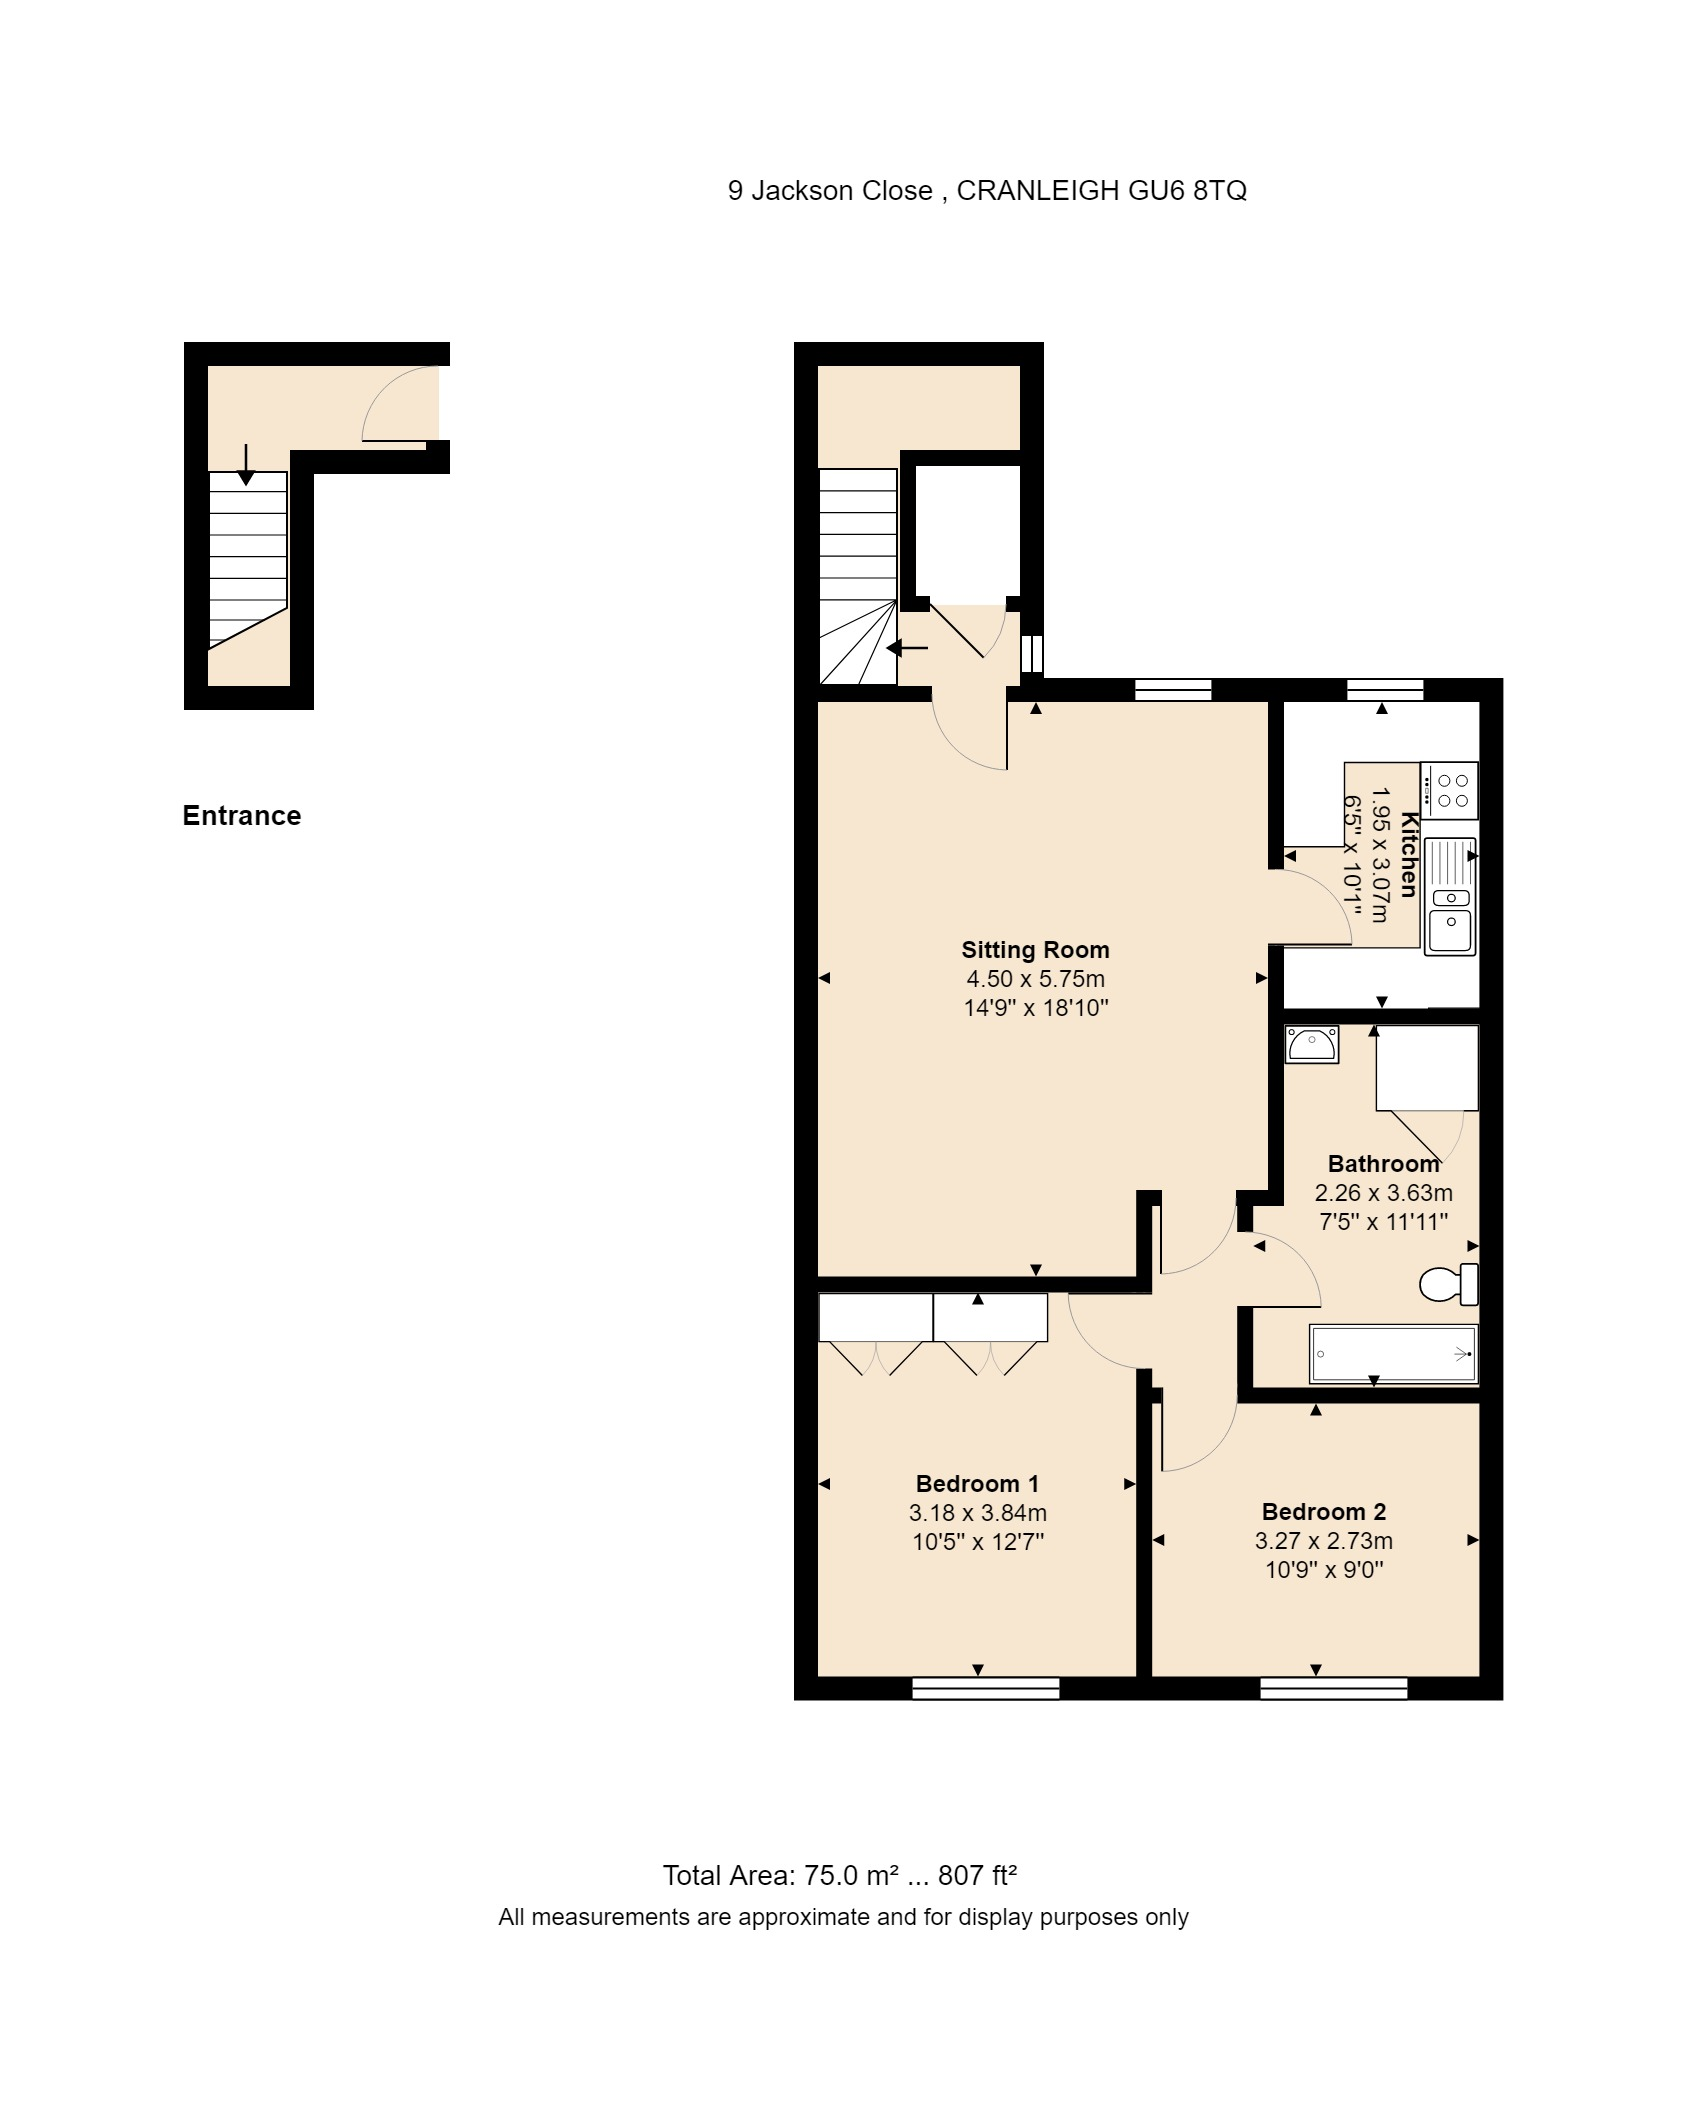 9 Jackson Close Floorplan